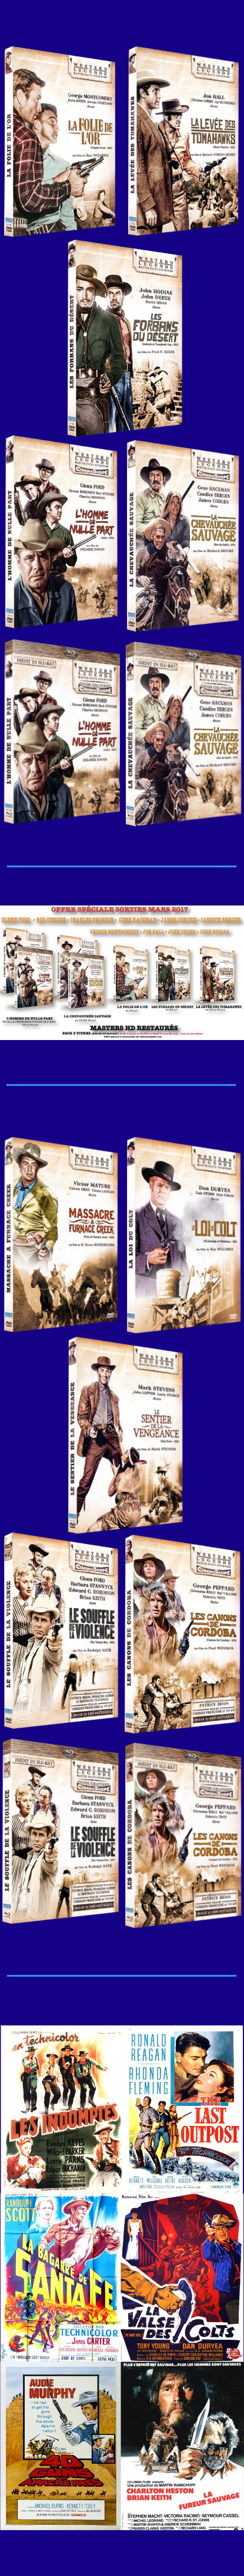 Nouveautés western DVD & Blu-ray Sidonis